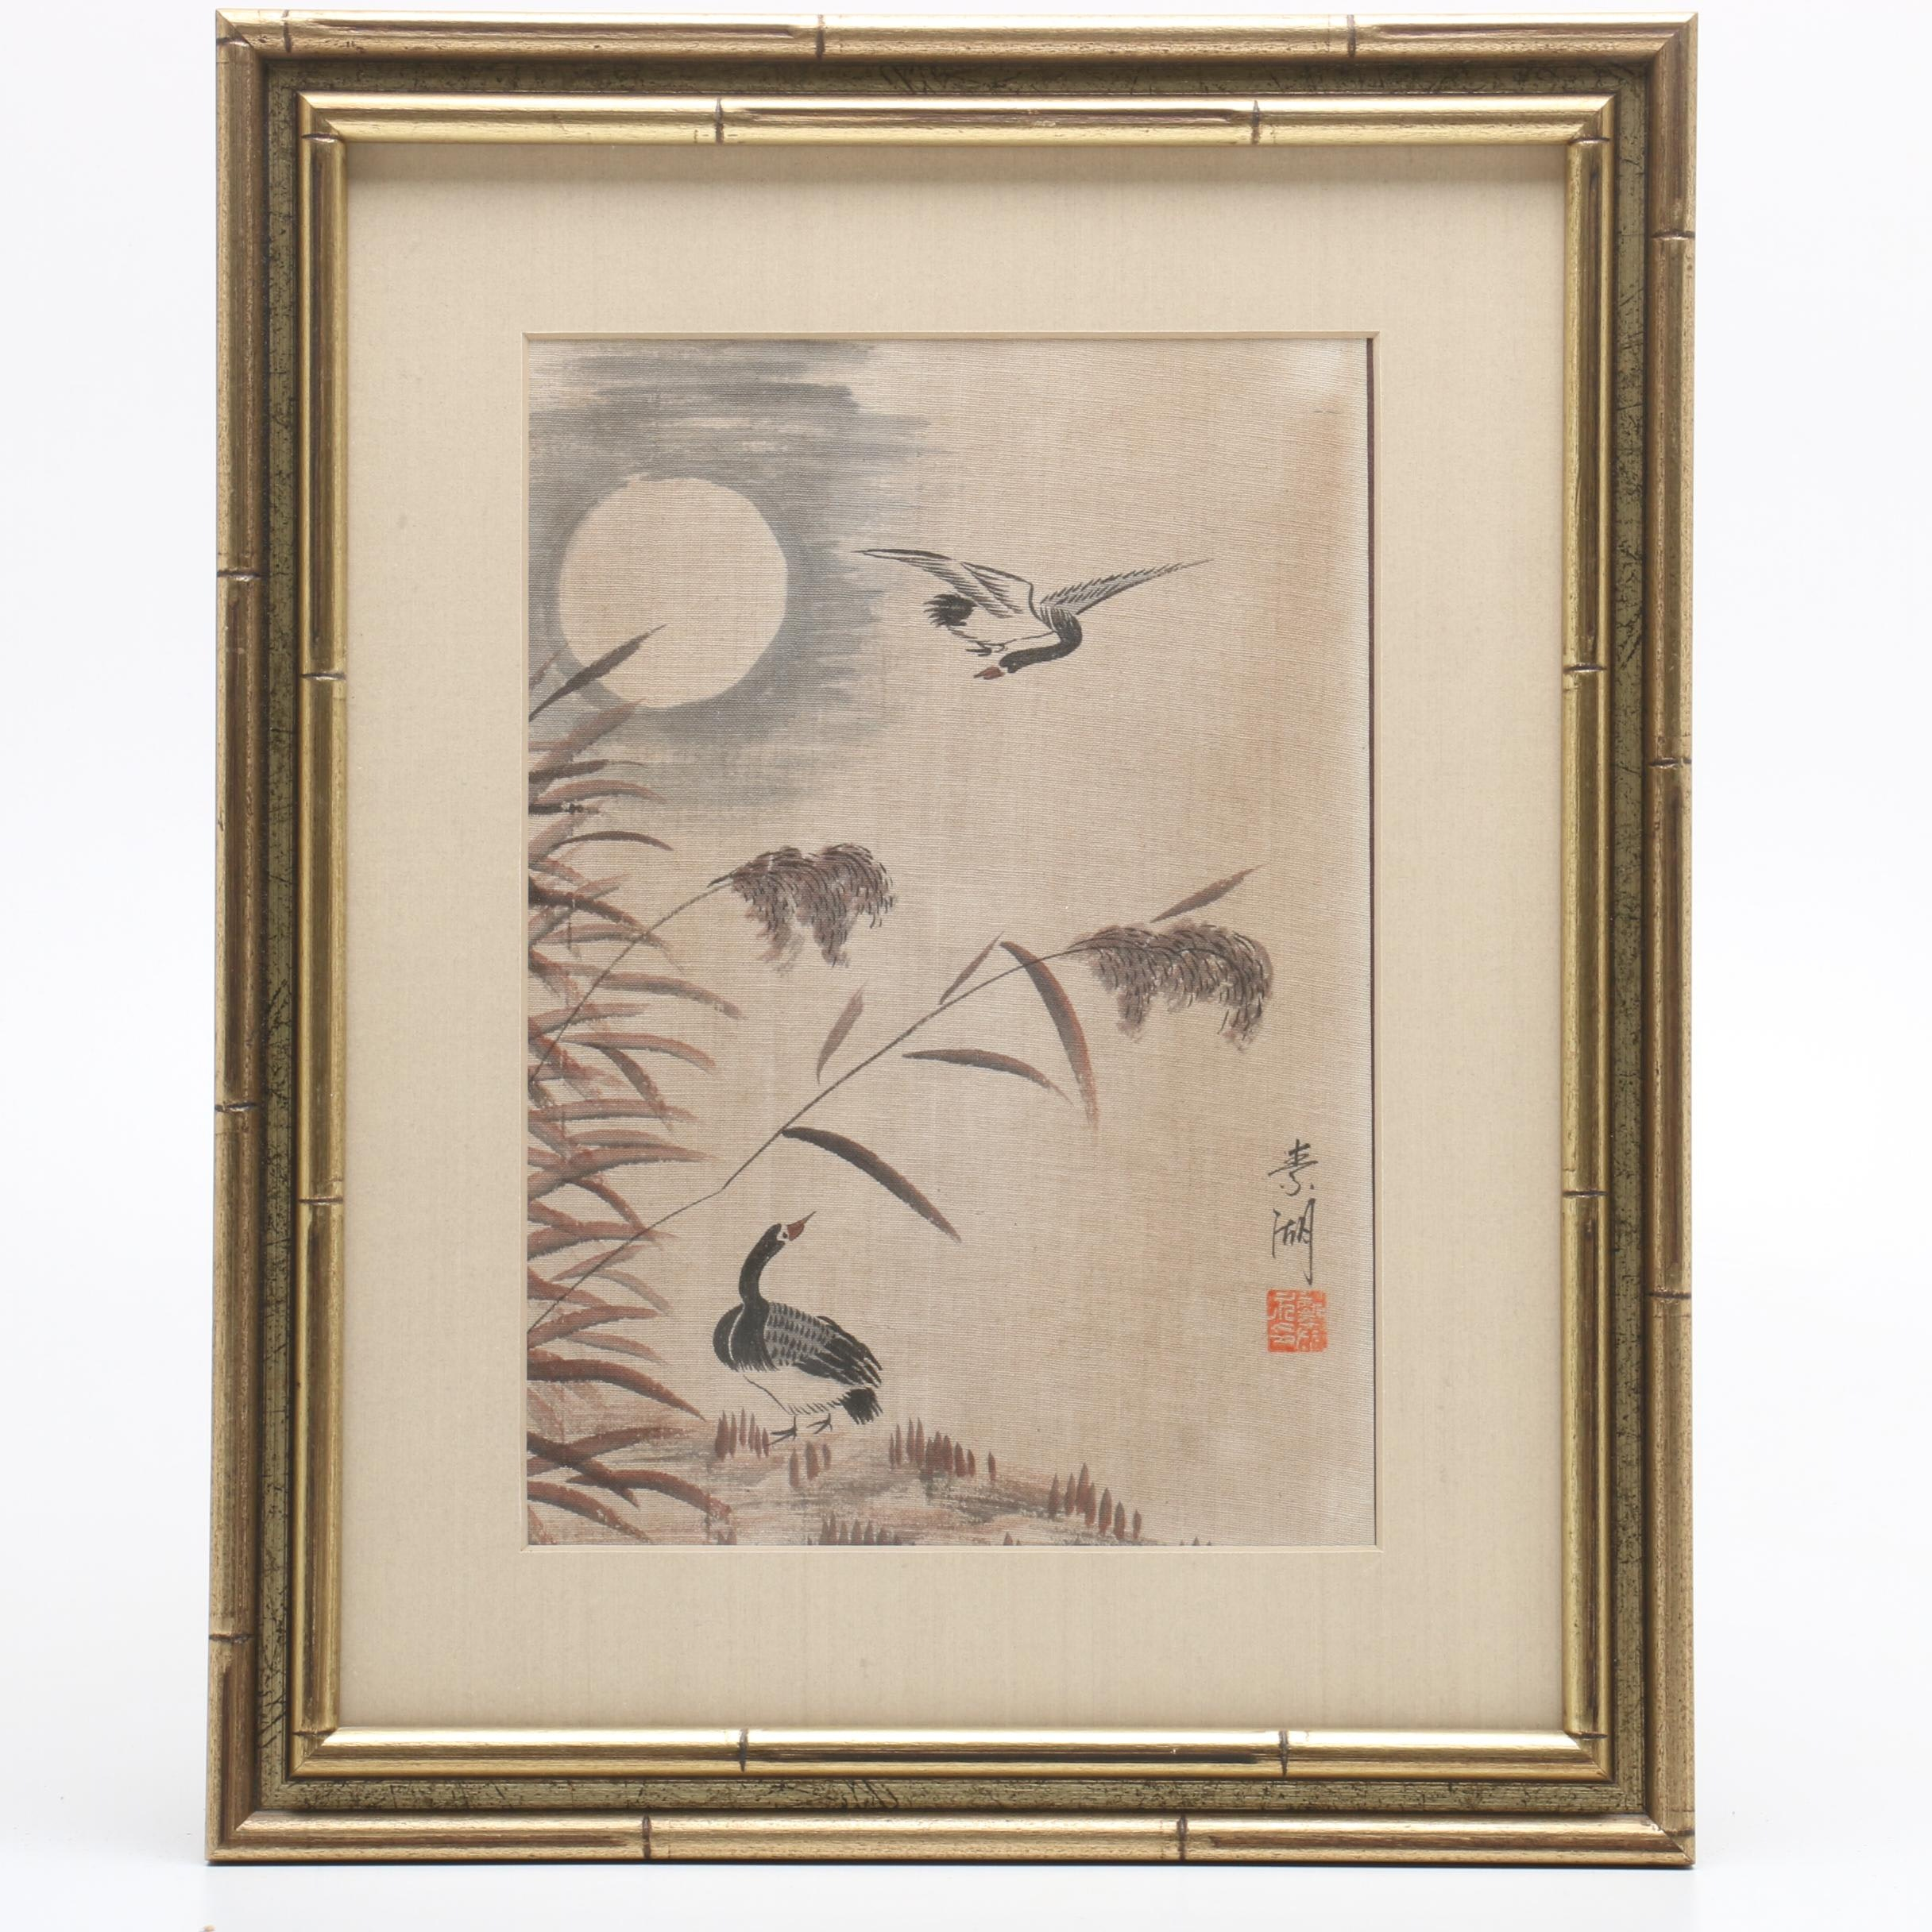 Chinese Gouache on Fabric Painting of Wild Geese and Reeds